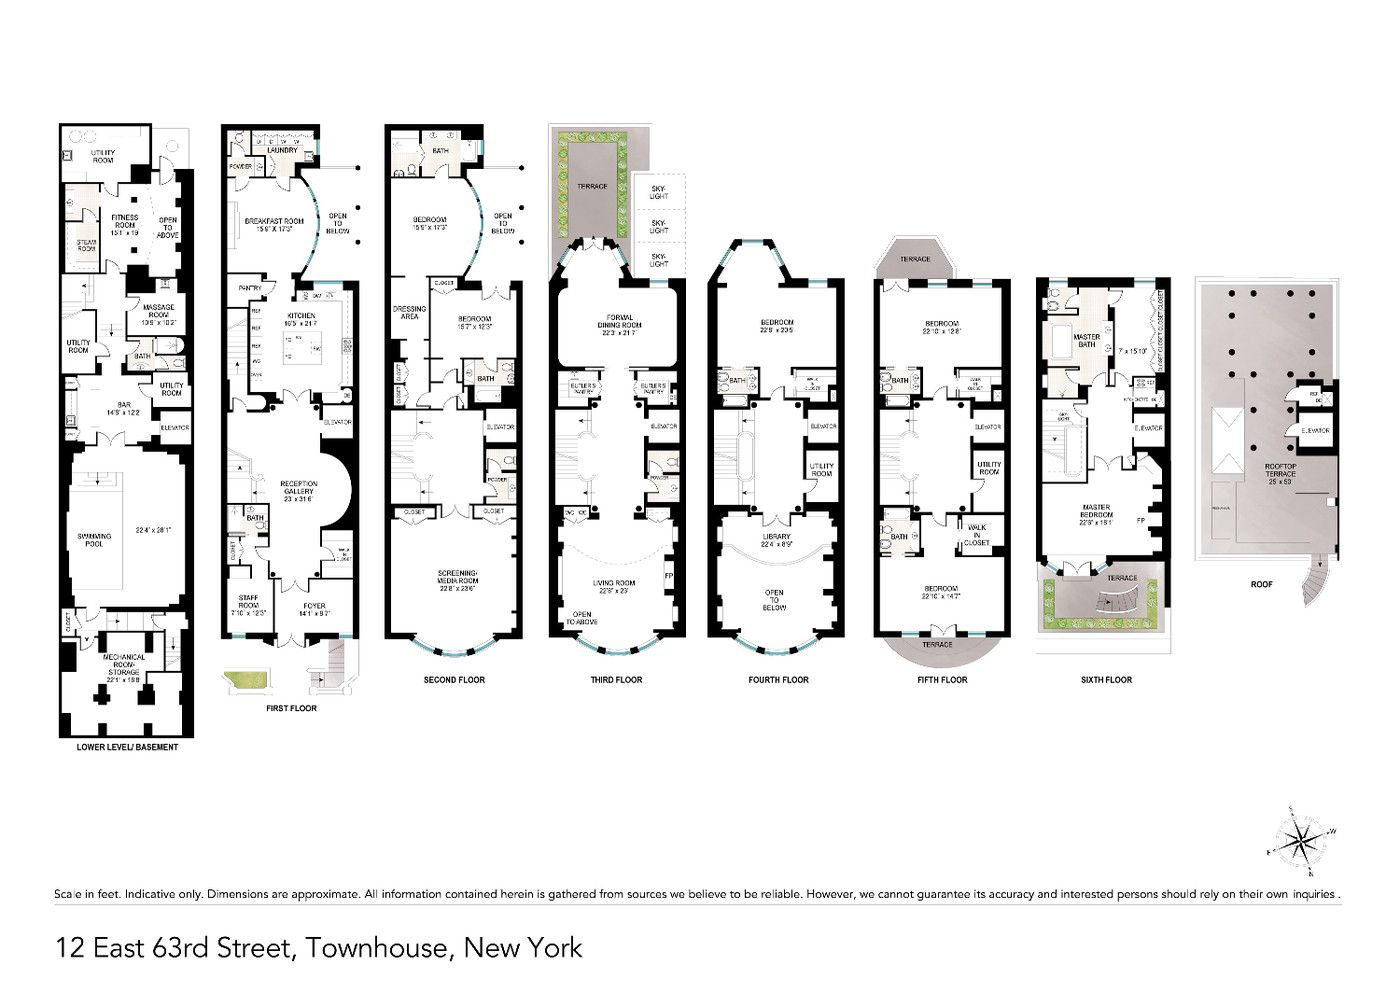 For 67m An Opulent Upper East Side Mansion With Thierry Despont Renovation Upper East Side Townhouse Nyc Real Estate